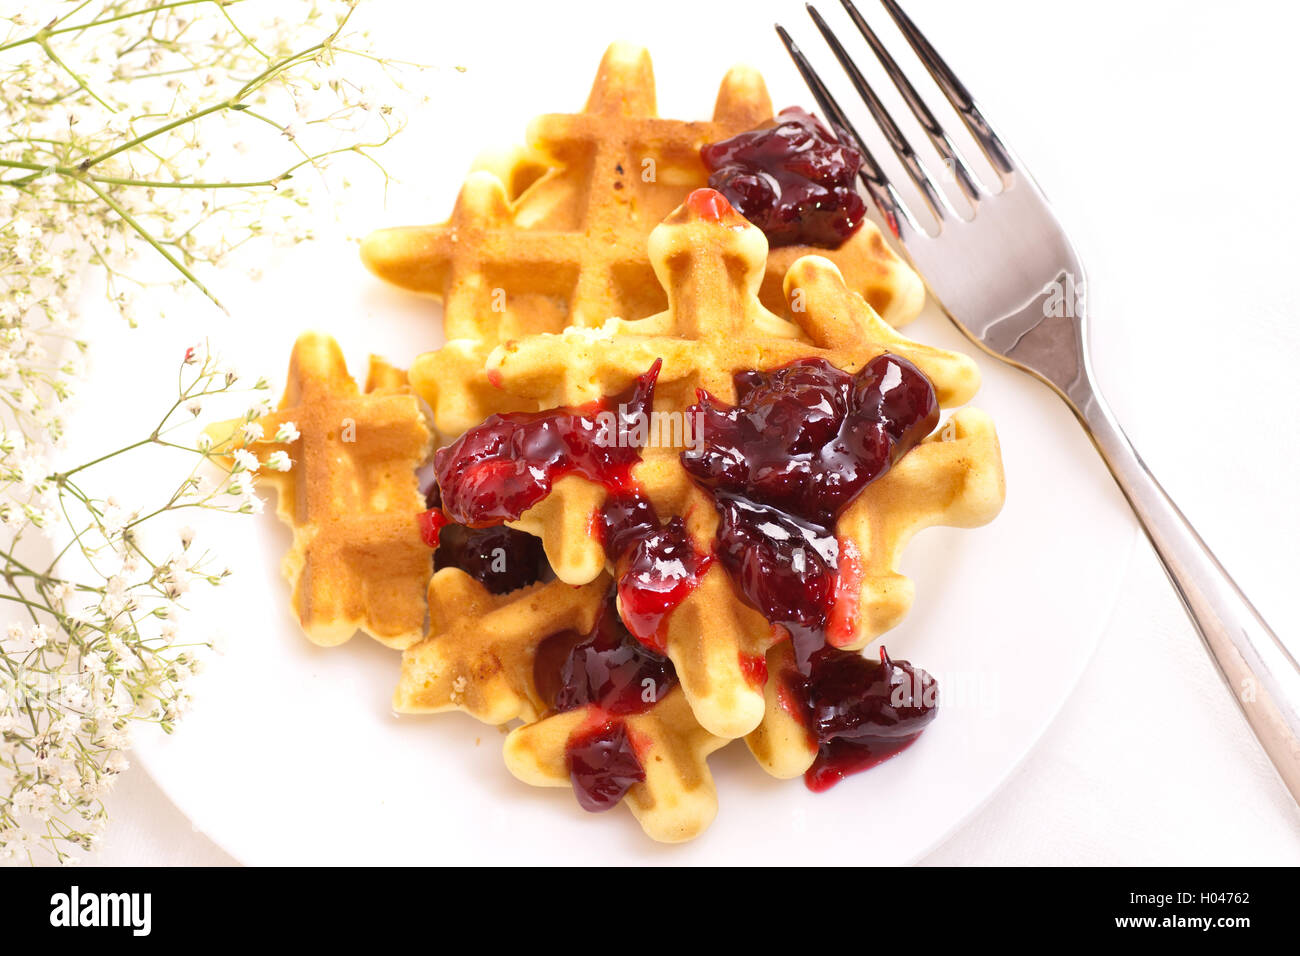 Wafers on plate with confiture - Stock Image